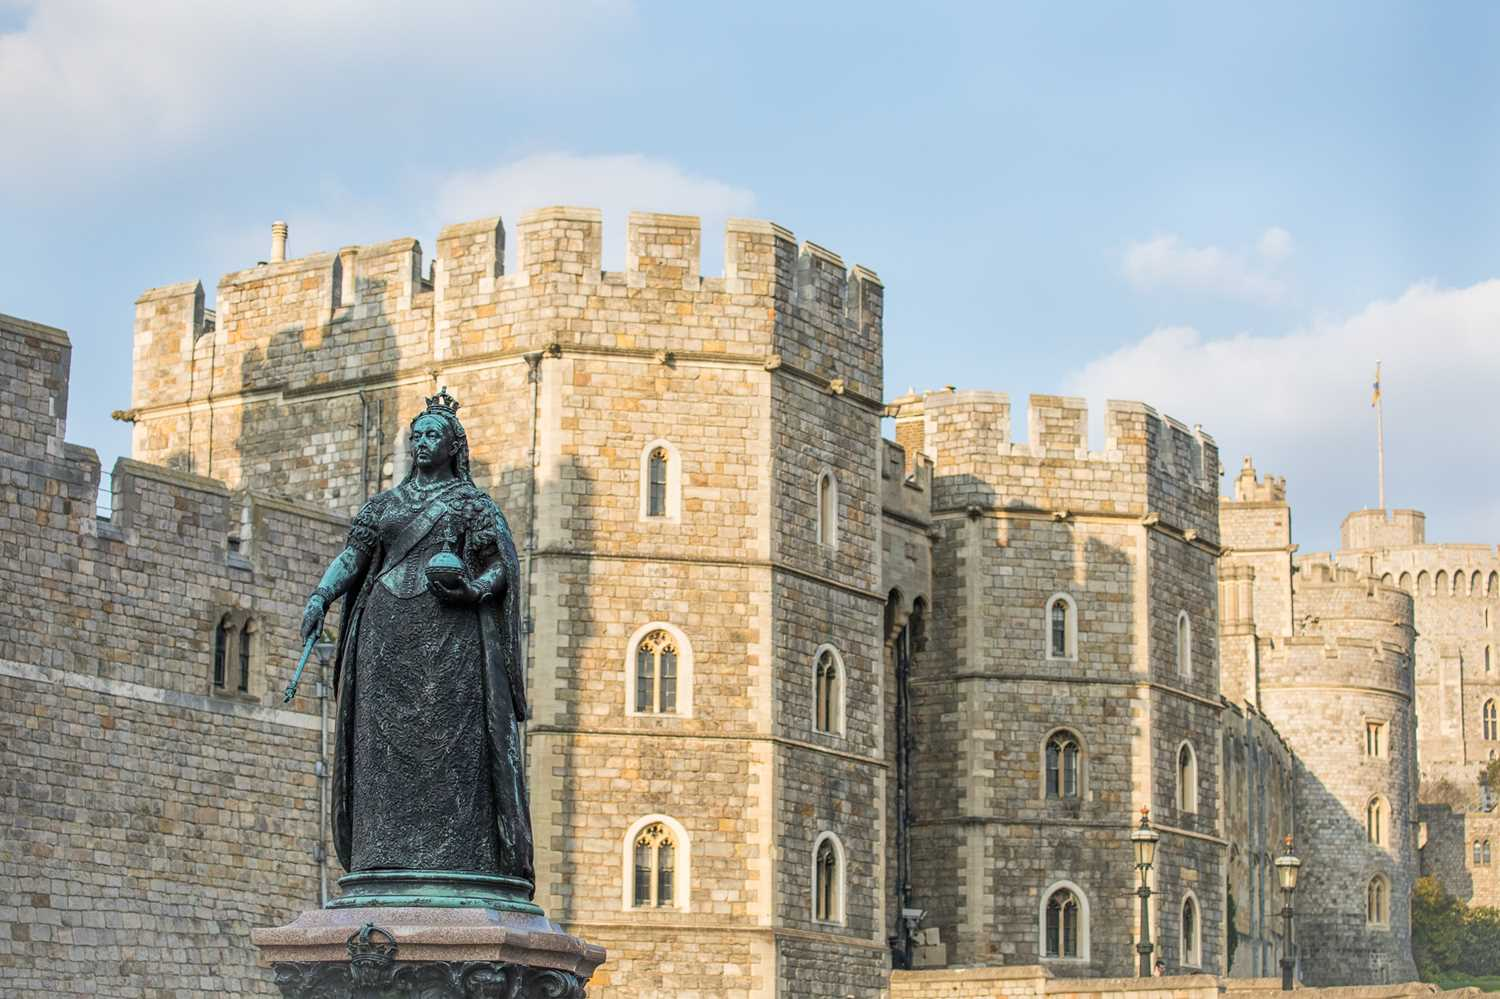 Private Tour of Windsor Castle for 10 Couples with Dinner & Overnight Stay at the Sir Christopher